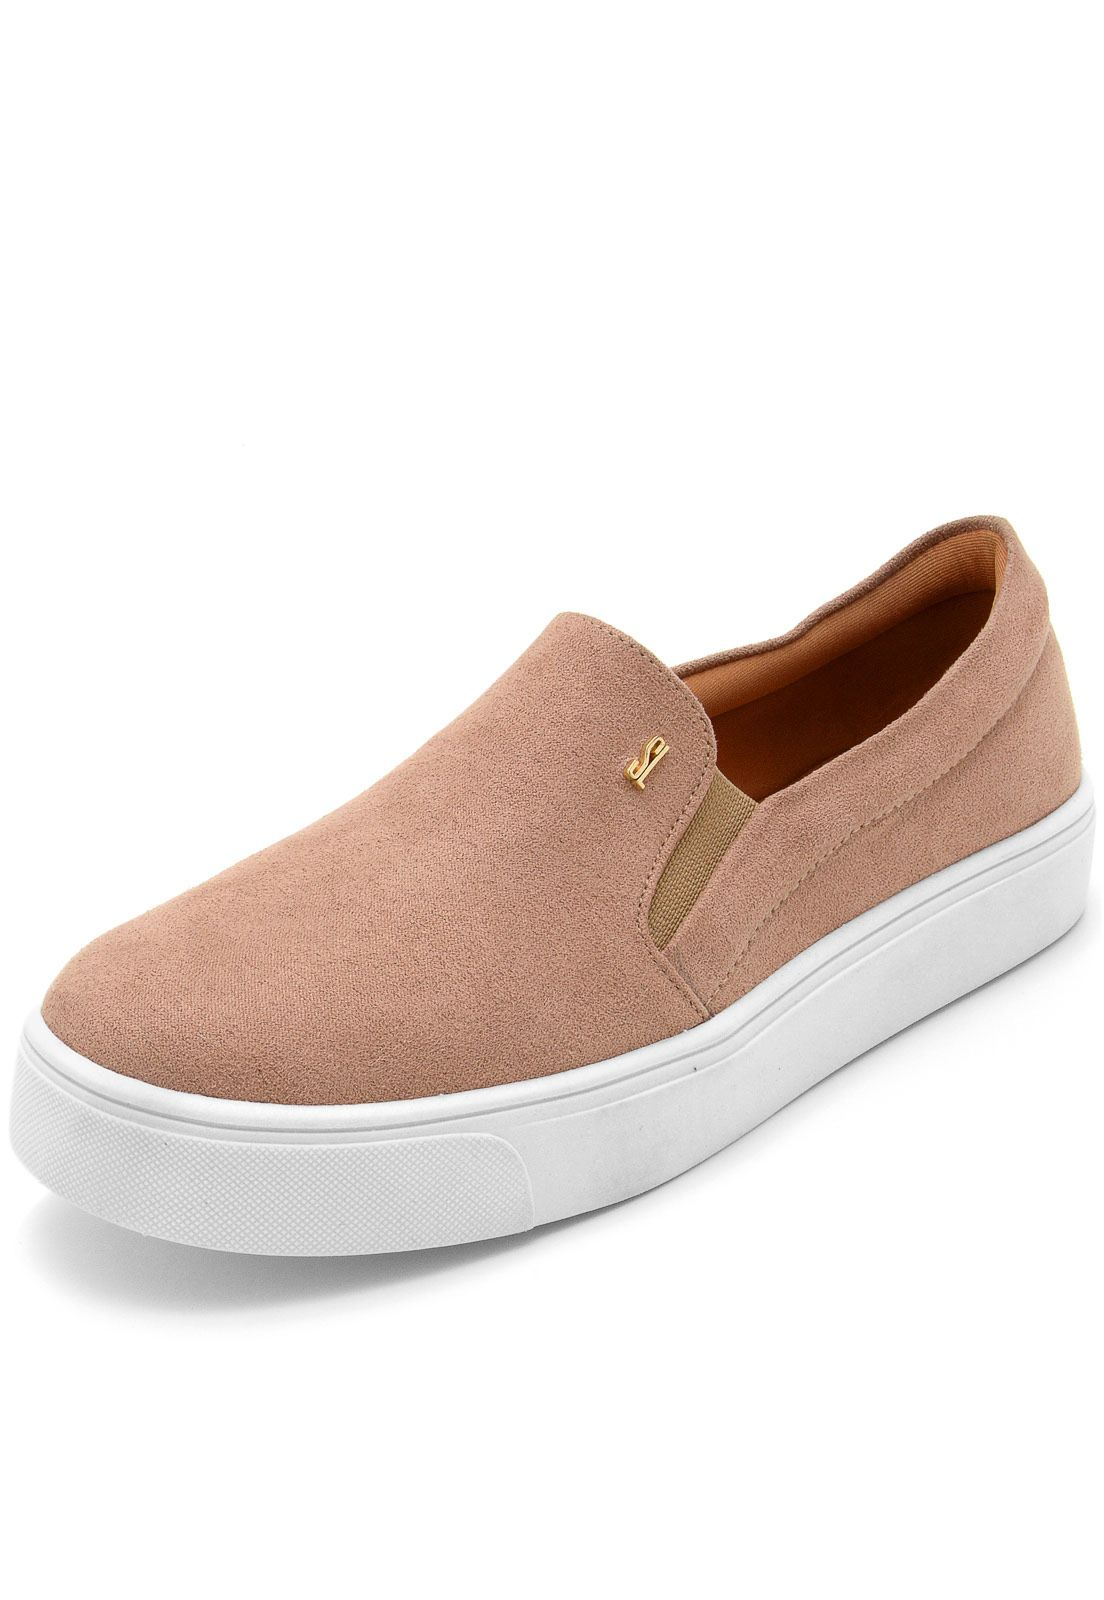 e123497cf Slip On Santa Lolla Suede Bege in 2019 | cute shoes | Sapatos santa lolla,  Suede, Looks